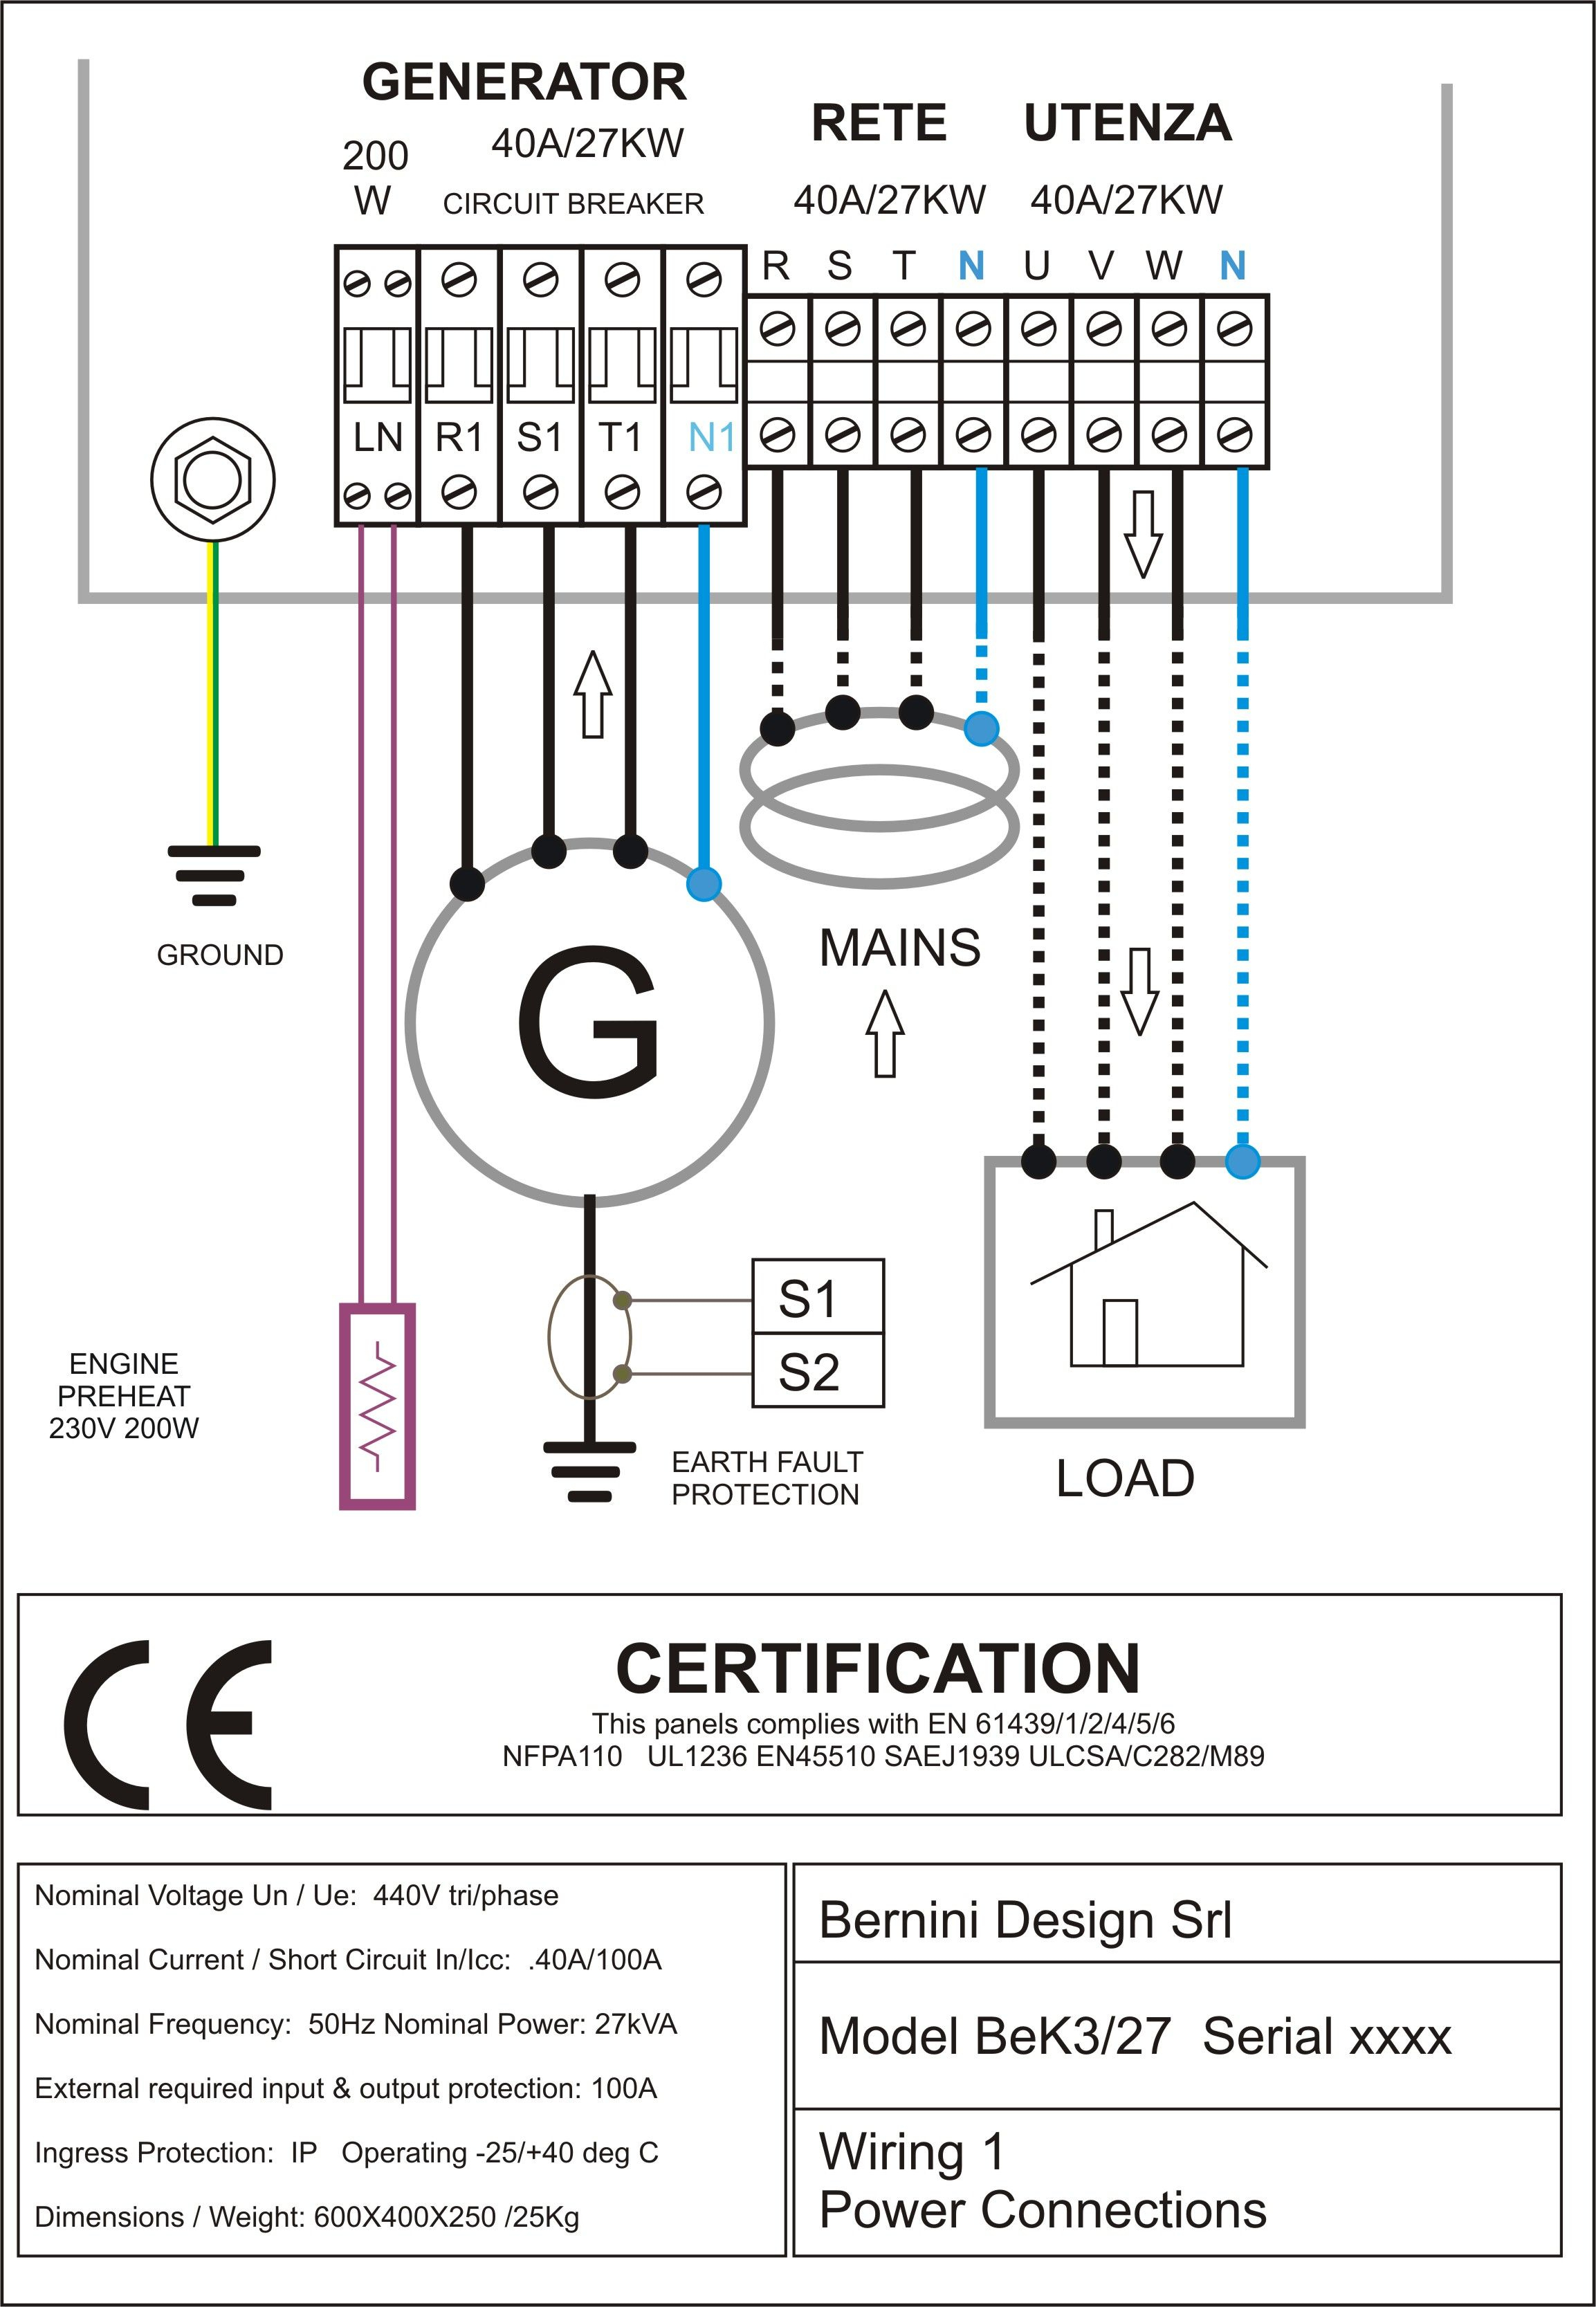 Wire Diagram For Generator   Wiring Library - Generator Wiring Diagram